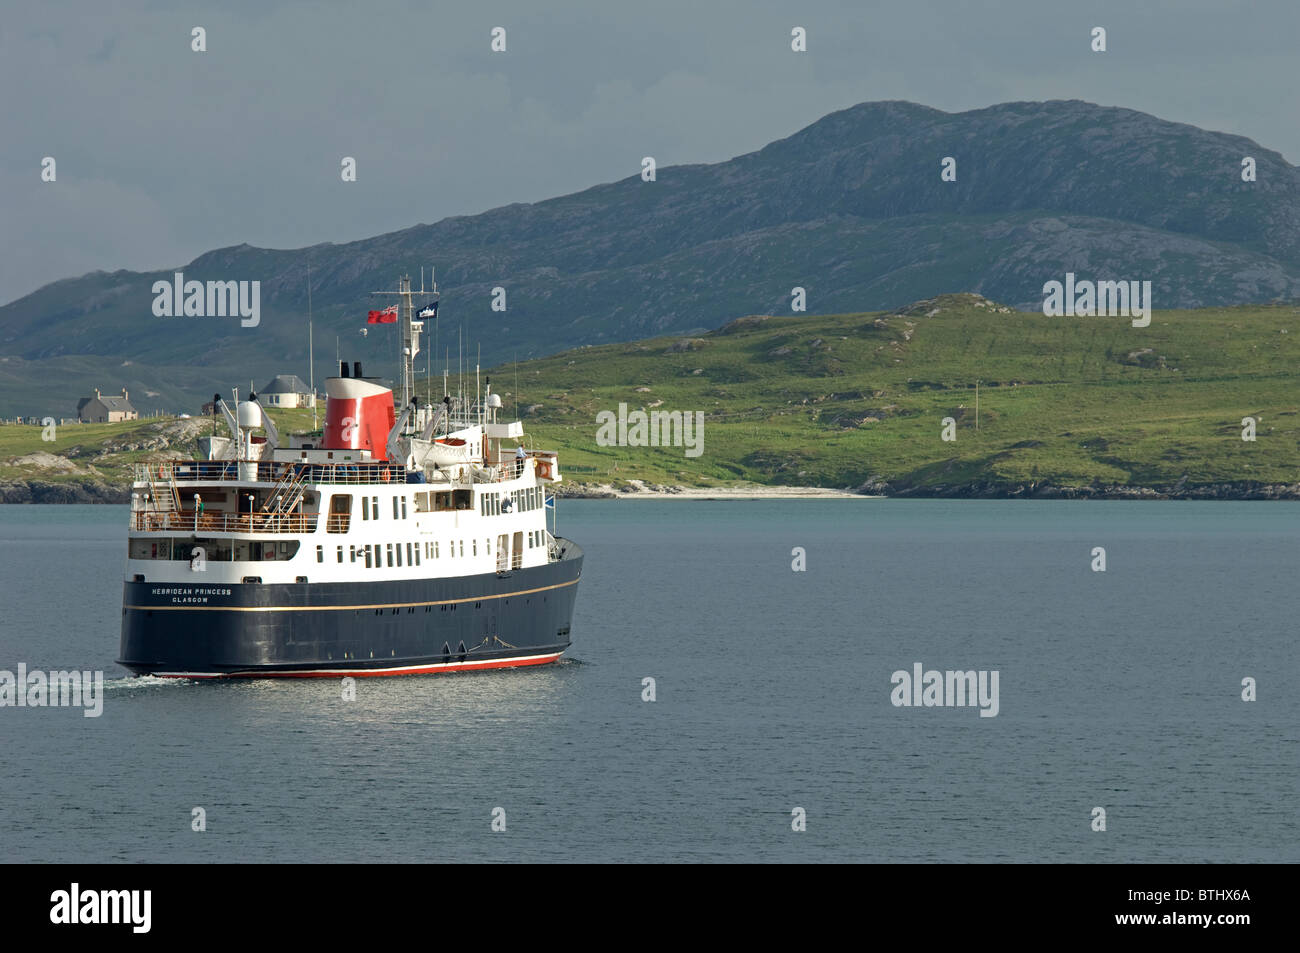 The Small Luxury Cruise ship arriving in Castlebay Isle of Barra, Outer Hebrides, Scotland.  SCO 6681 Stock Photo